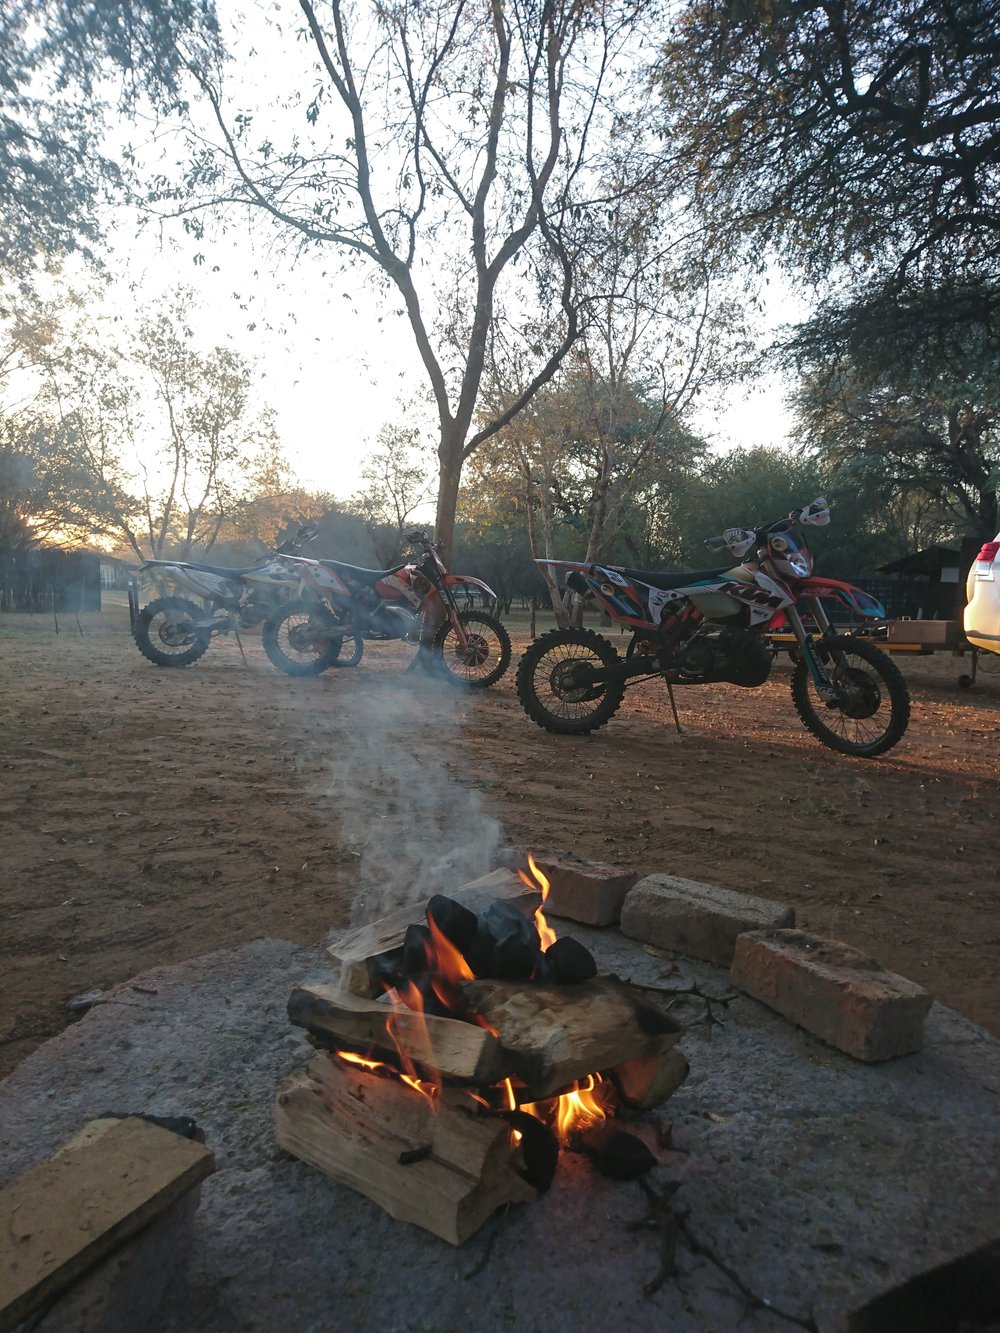 One of the best parts of a moto-trip: Beers and a campfire